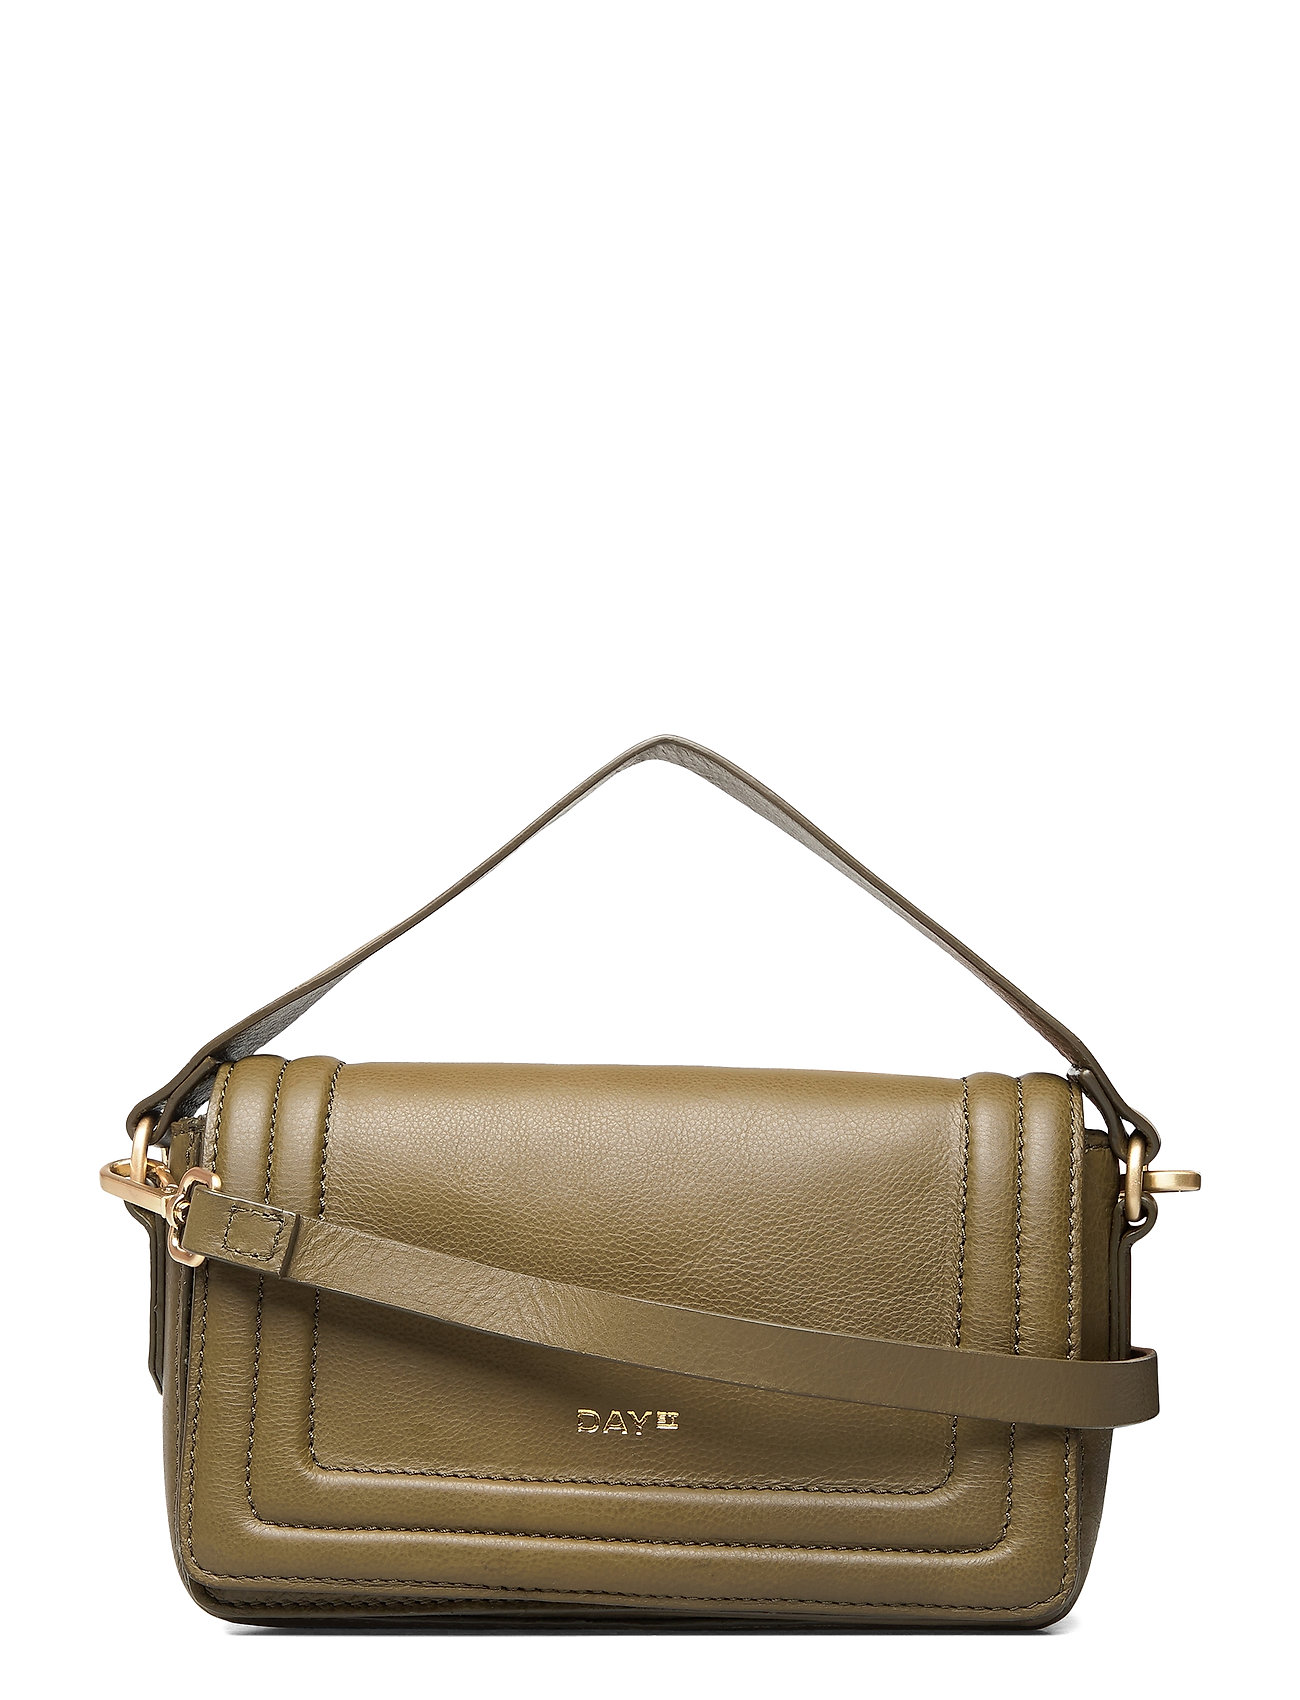 Image of Day Amman Cb Bags Small Shoulder Bags - Crossbody Bags Grøn DAY Et (3446398099)